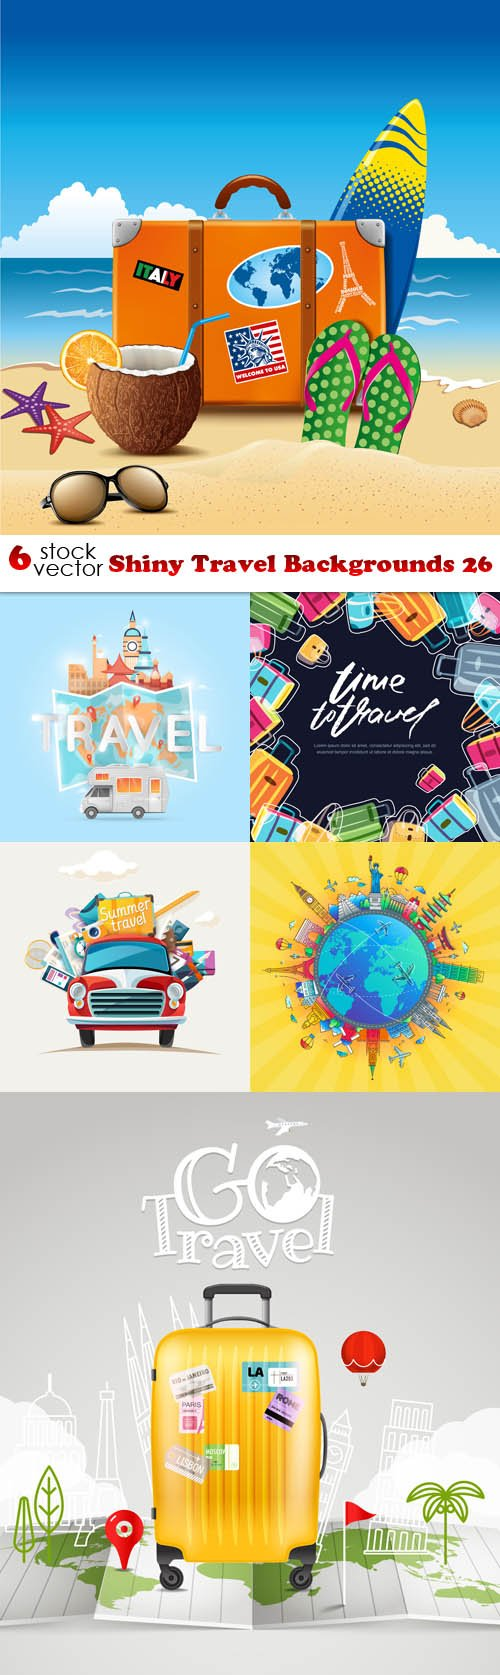 Vectors - Shiny Travel Backgrounds 26